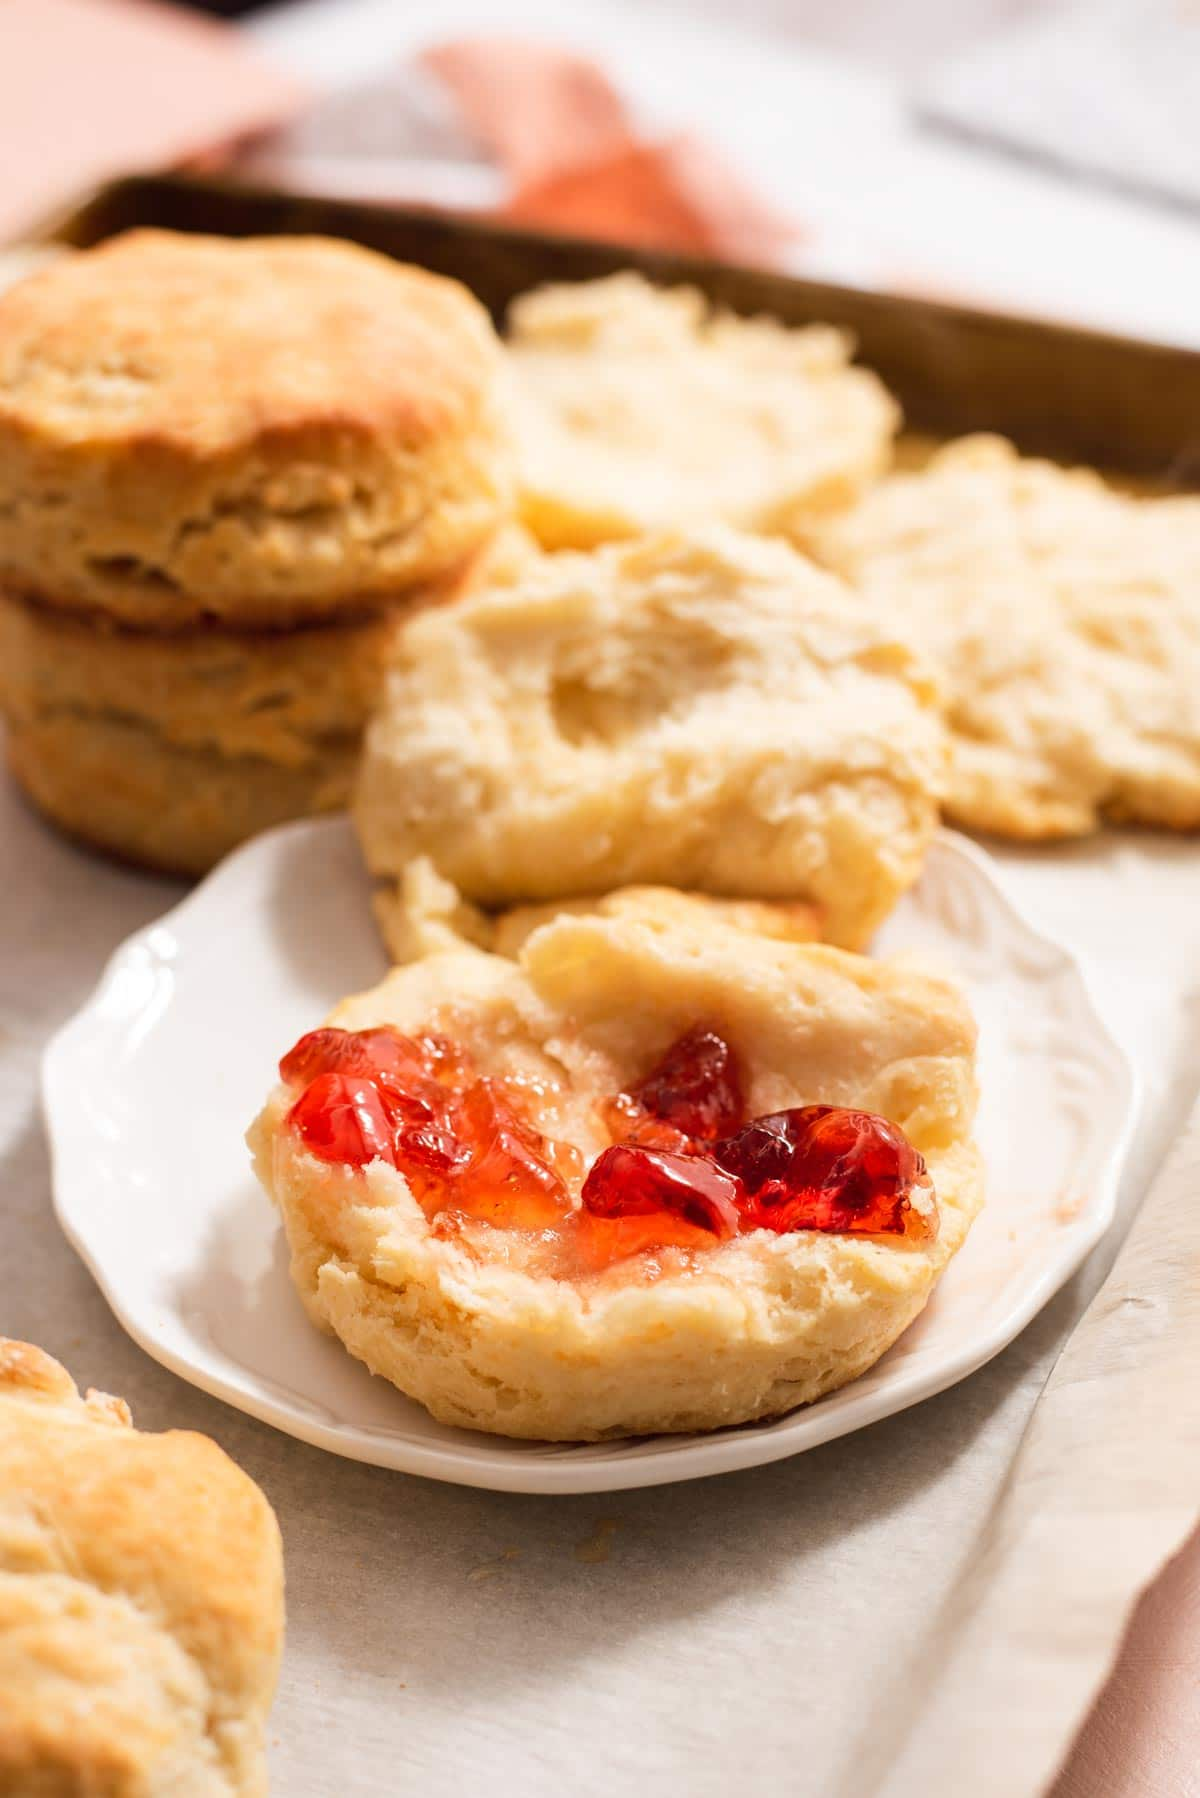 Jam spread on a biscuit half on a white plate with more biscuits in the backgroun